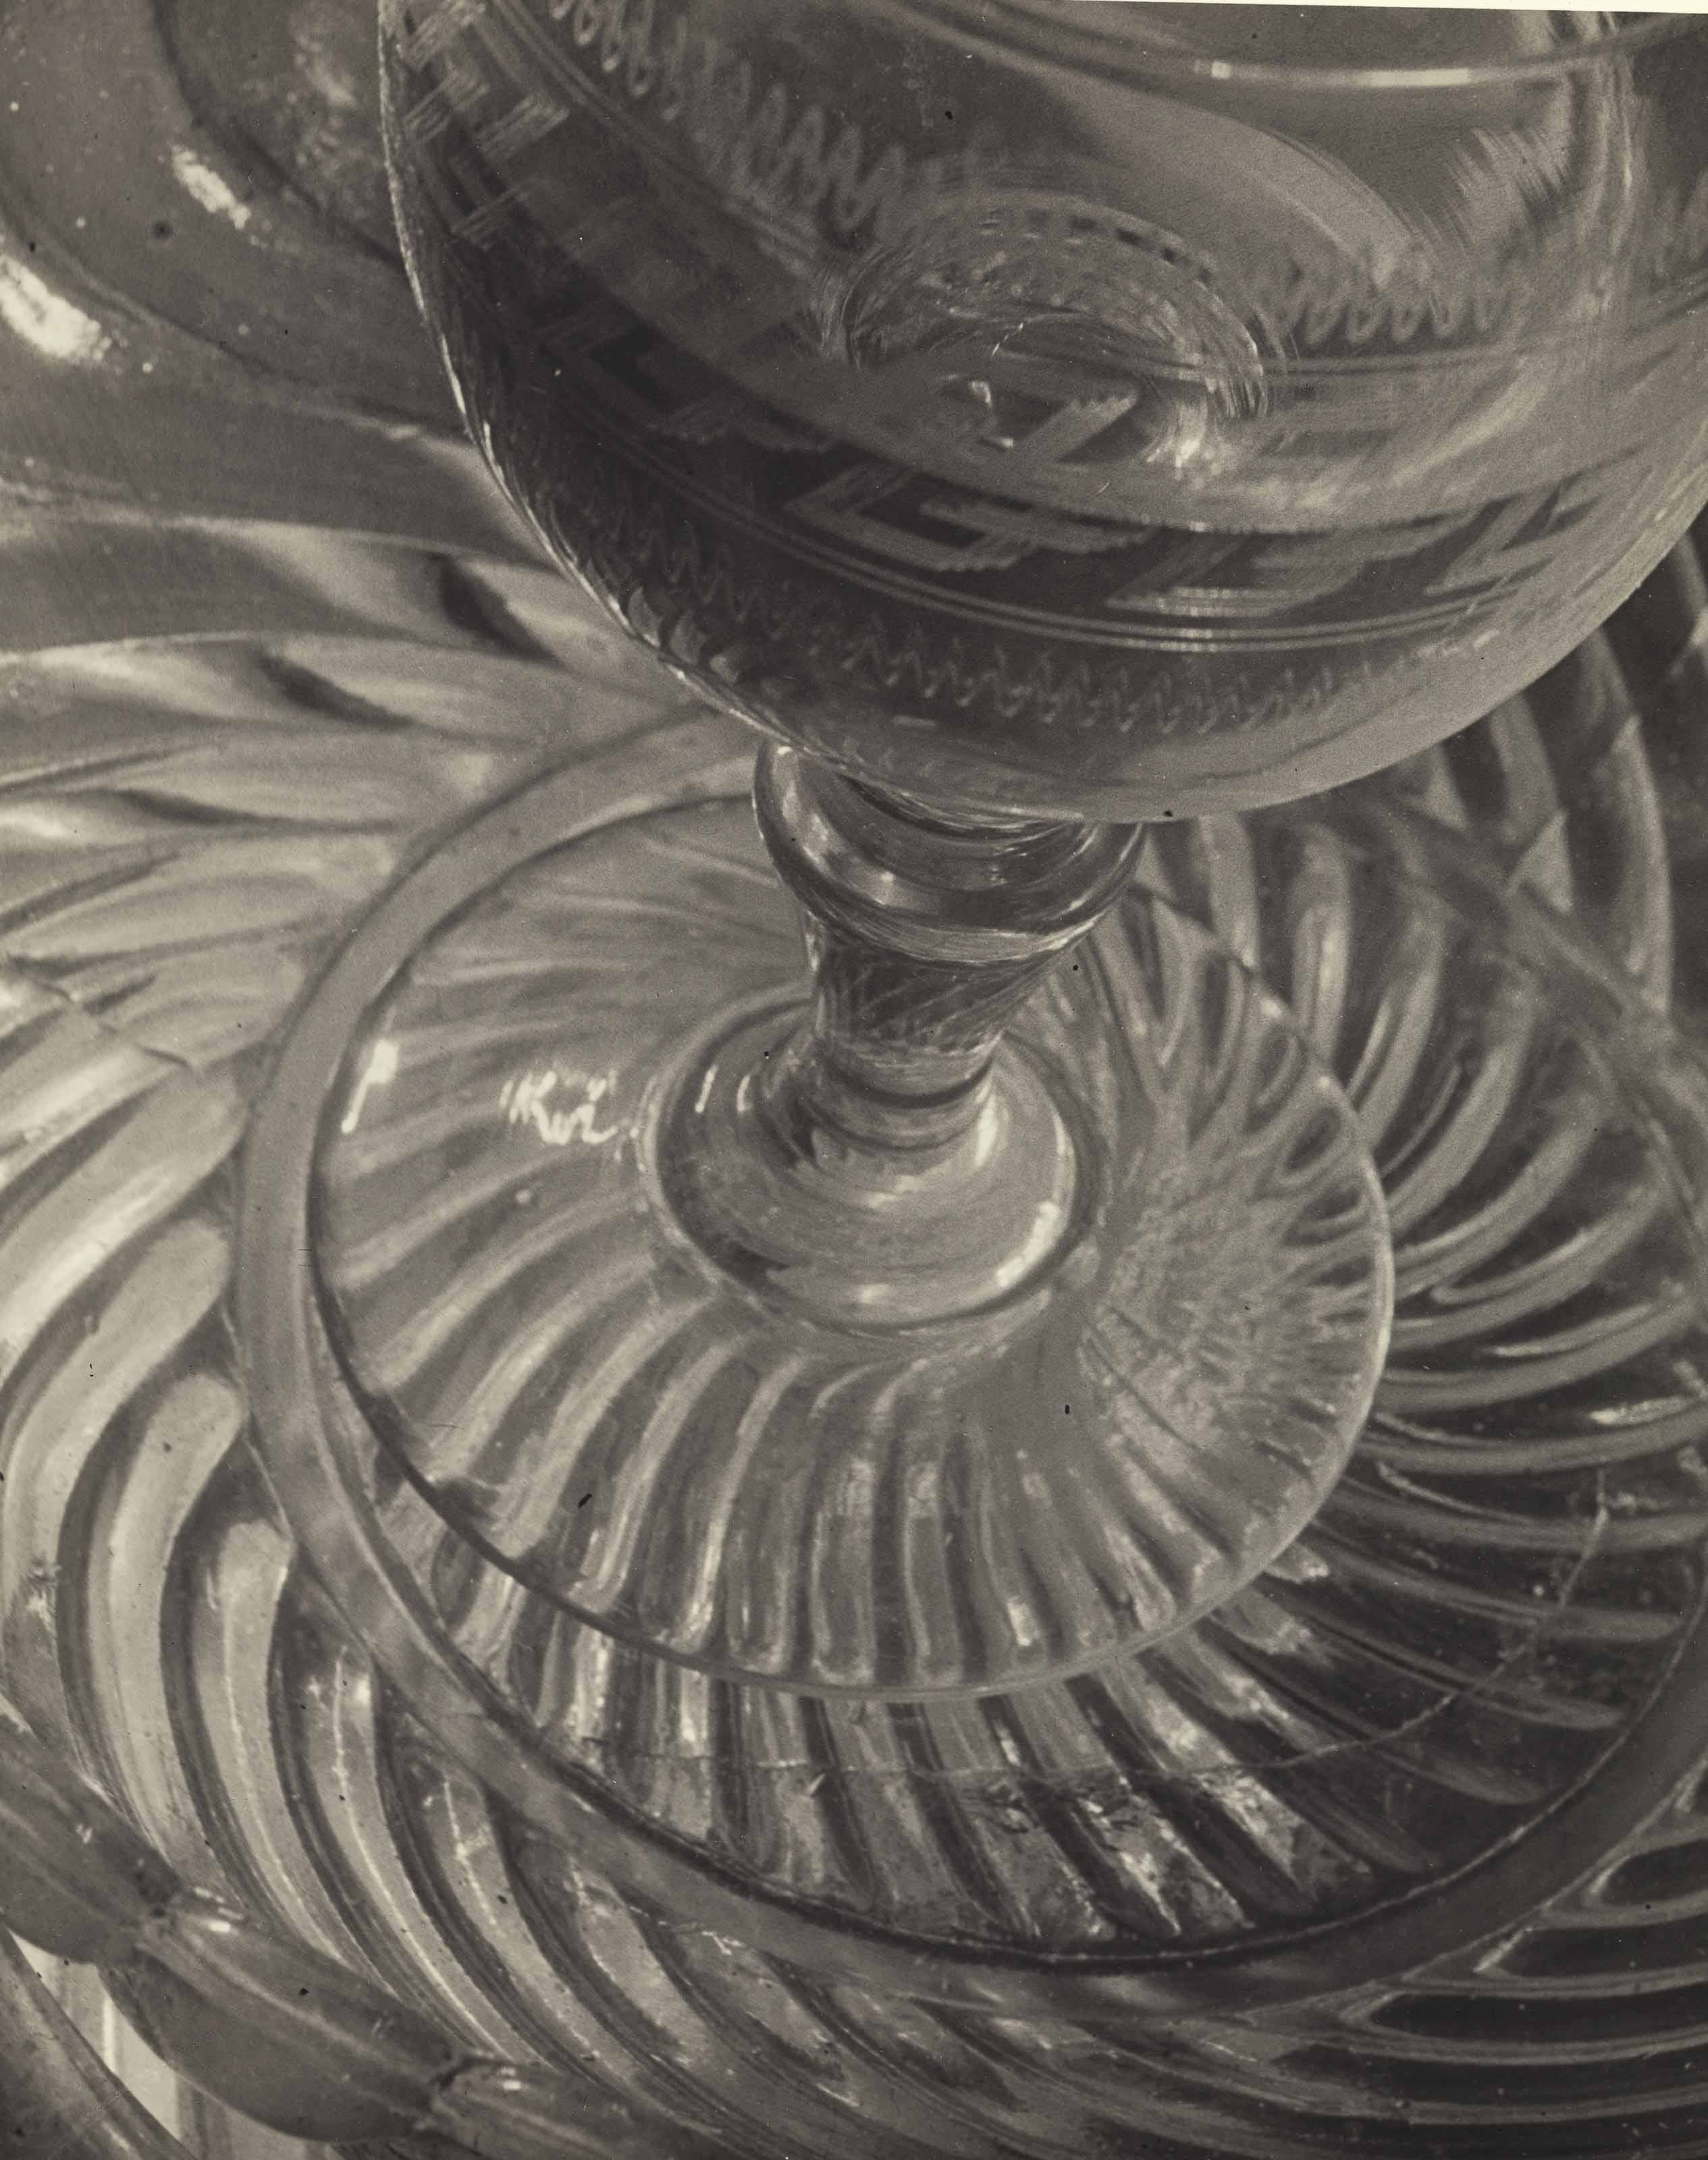 Glass and Light, 1927